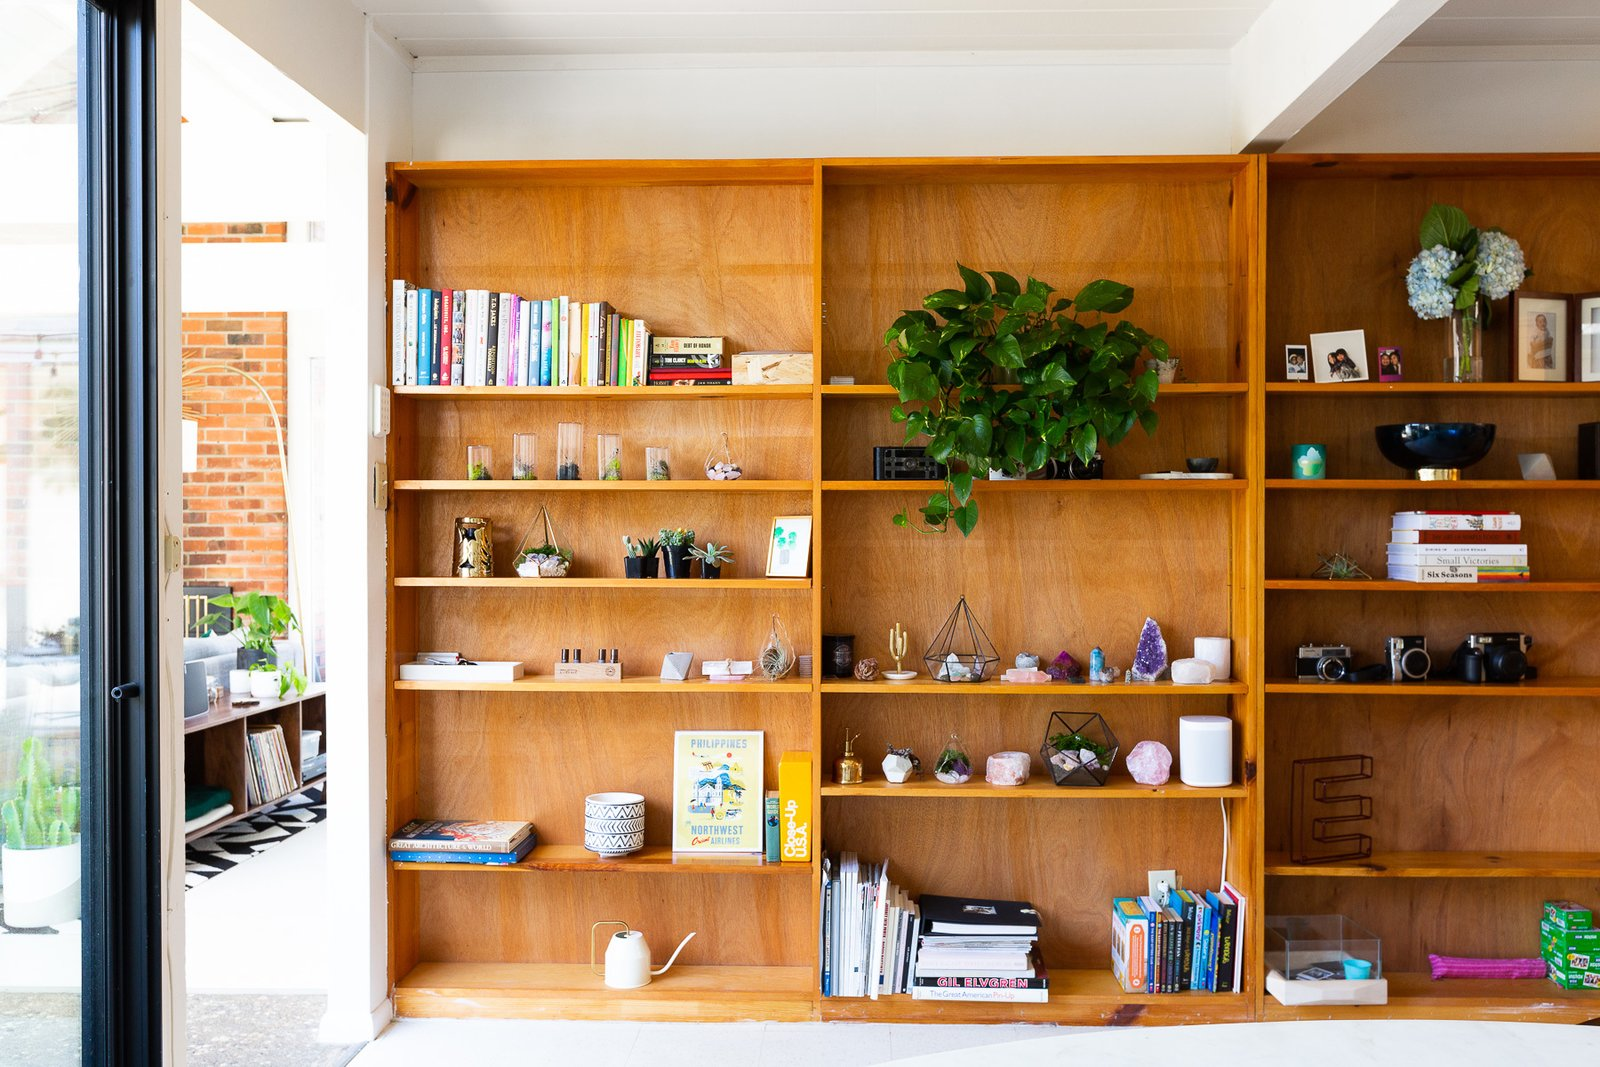 The bookshelf across from the breakfast nook holds favorite books, crystals, plants, and vintage cameras. (Gillian Walsworth)